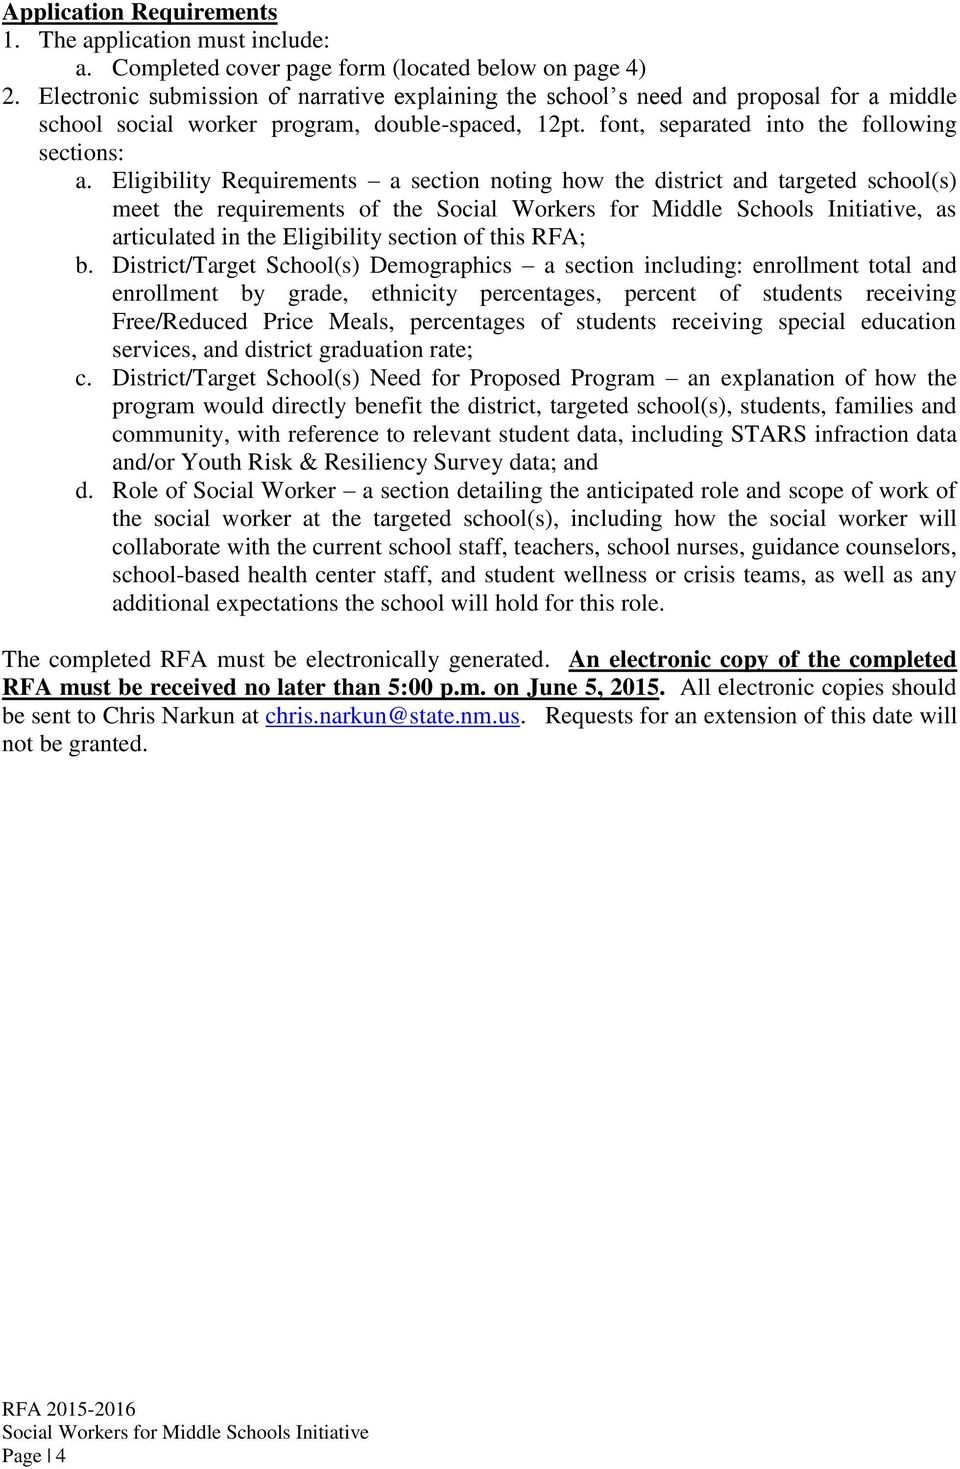 Eligibility Requirements a section noting how the district and targeted school(s) meet the requirements of the, as articulated in the Eligibility section of this RFA; b.